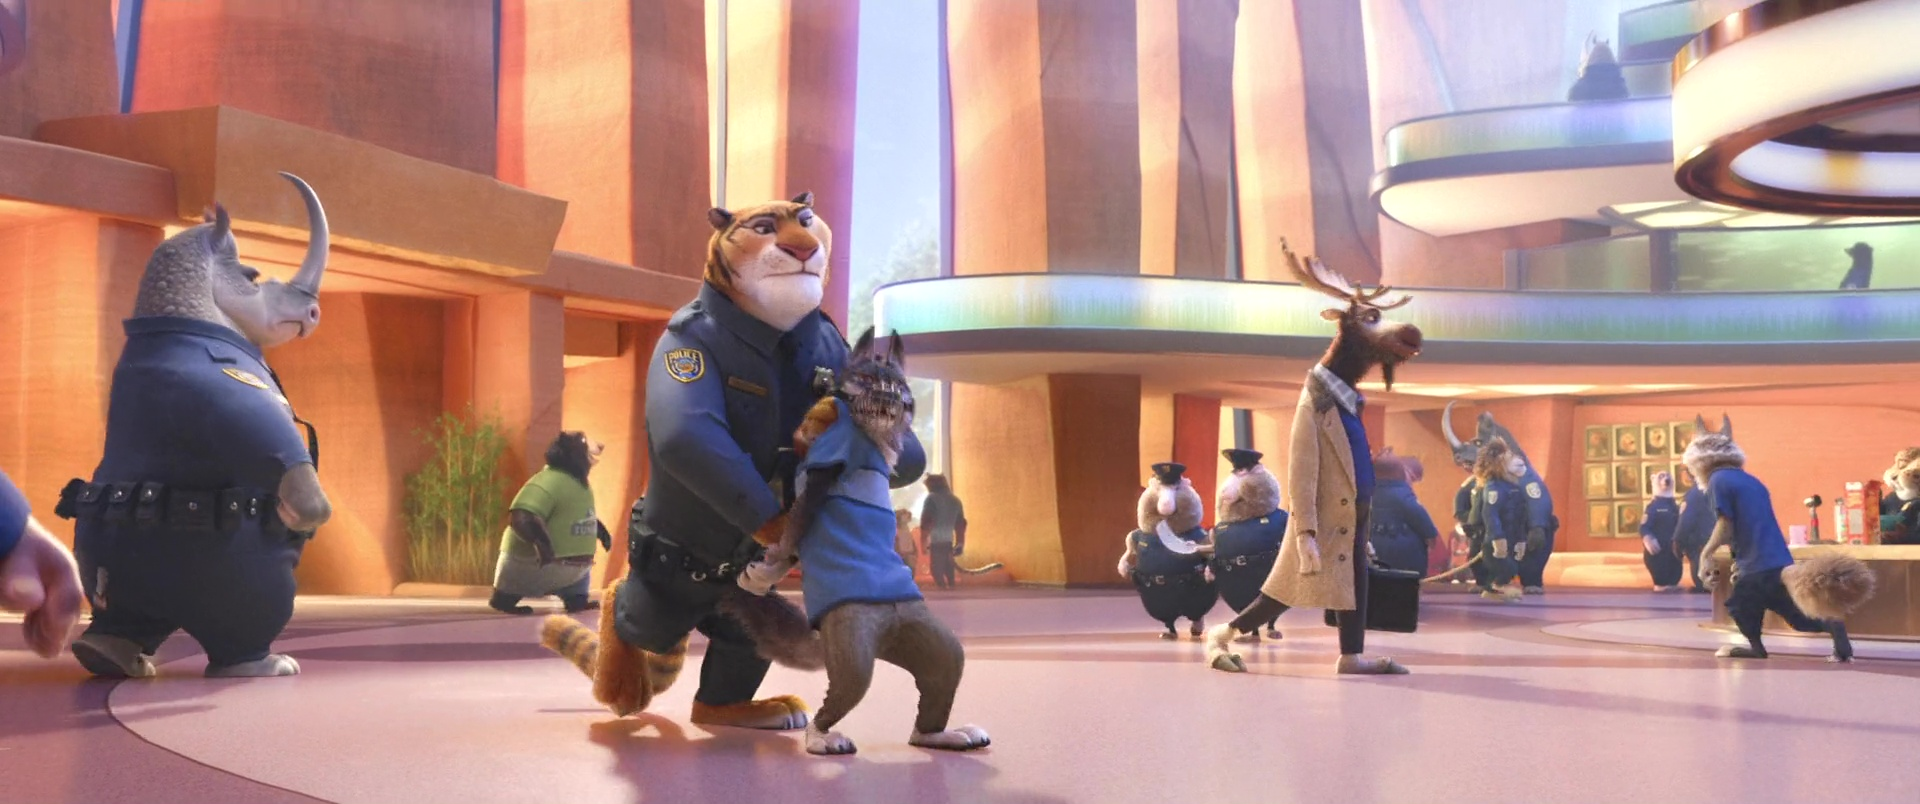 gromaire fangmeyer wolford disney personnage character zootopie zootopia